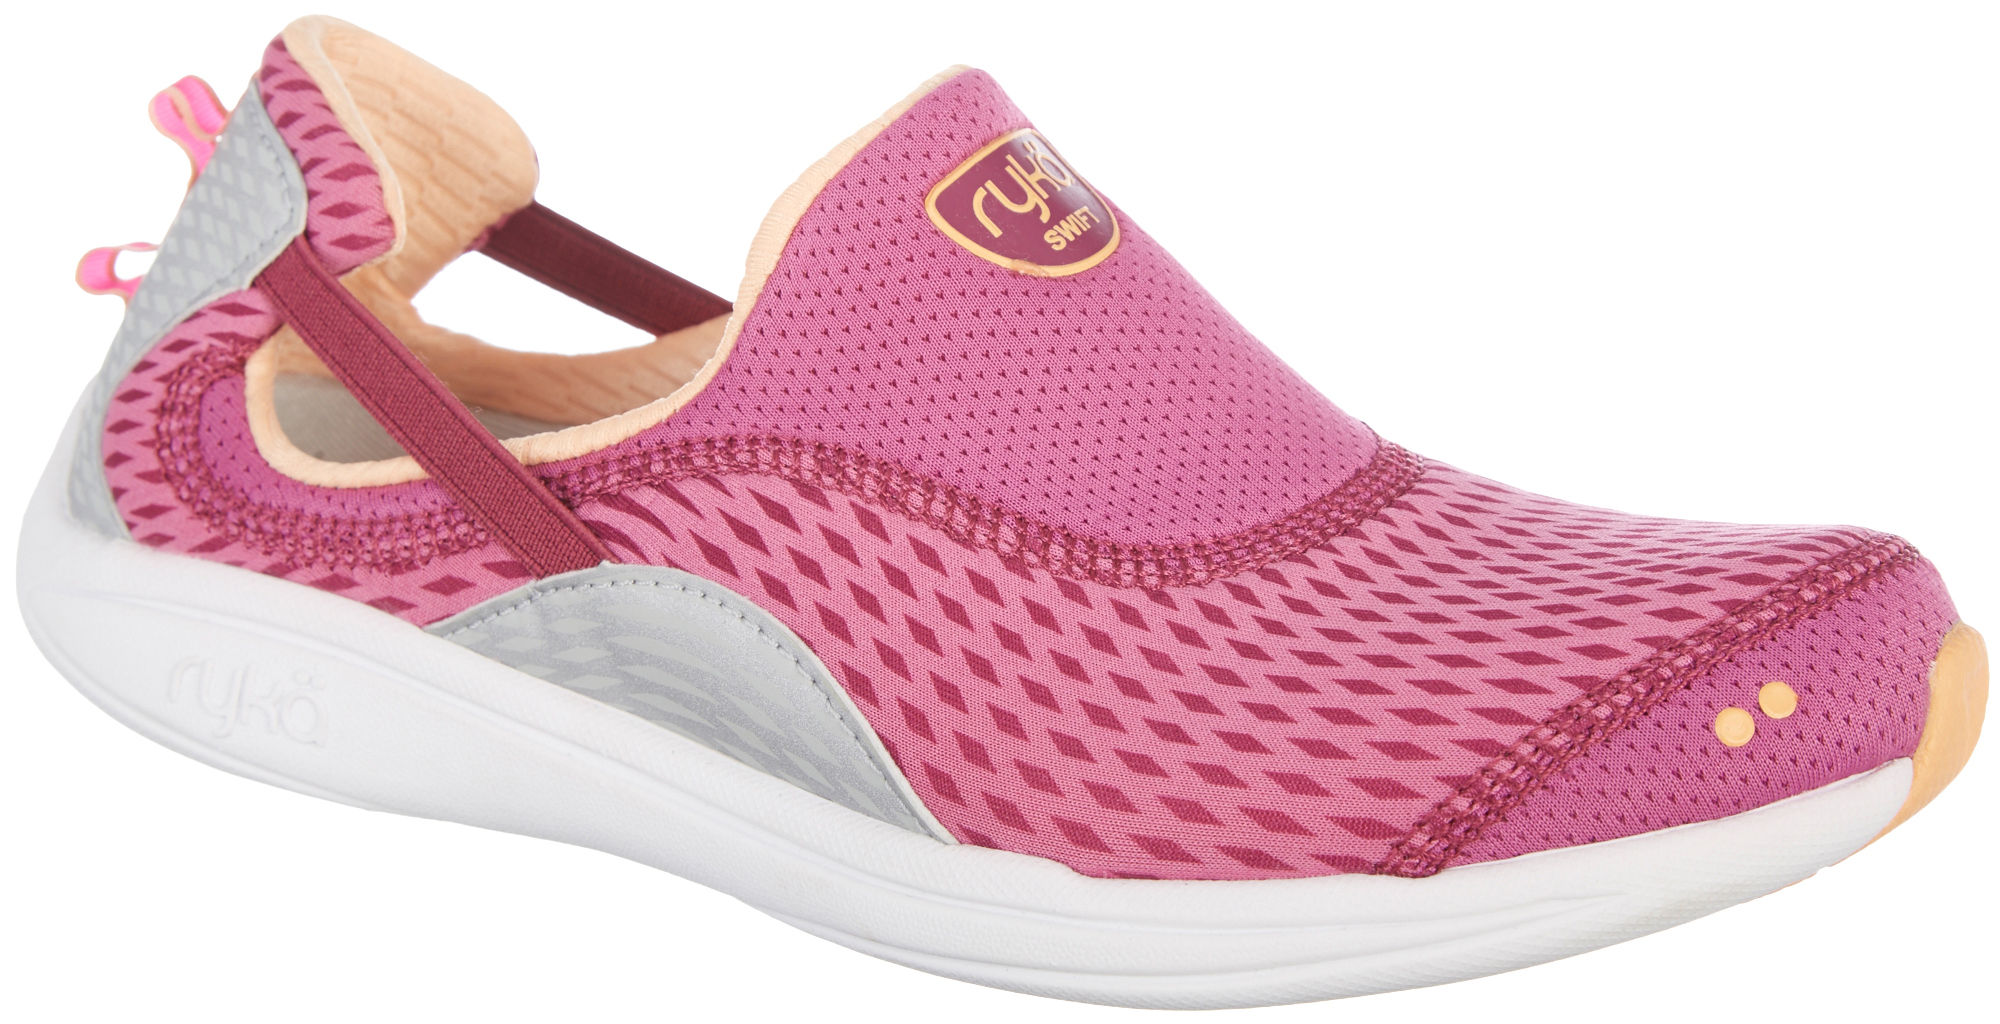 Ryka Water Shoes Canada